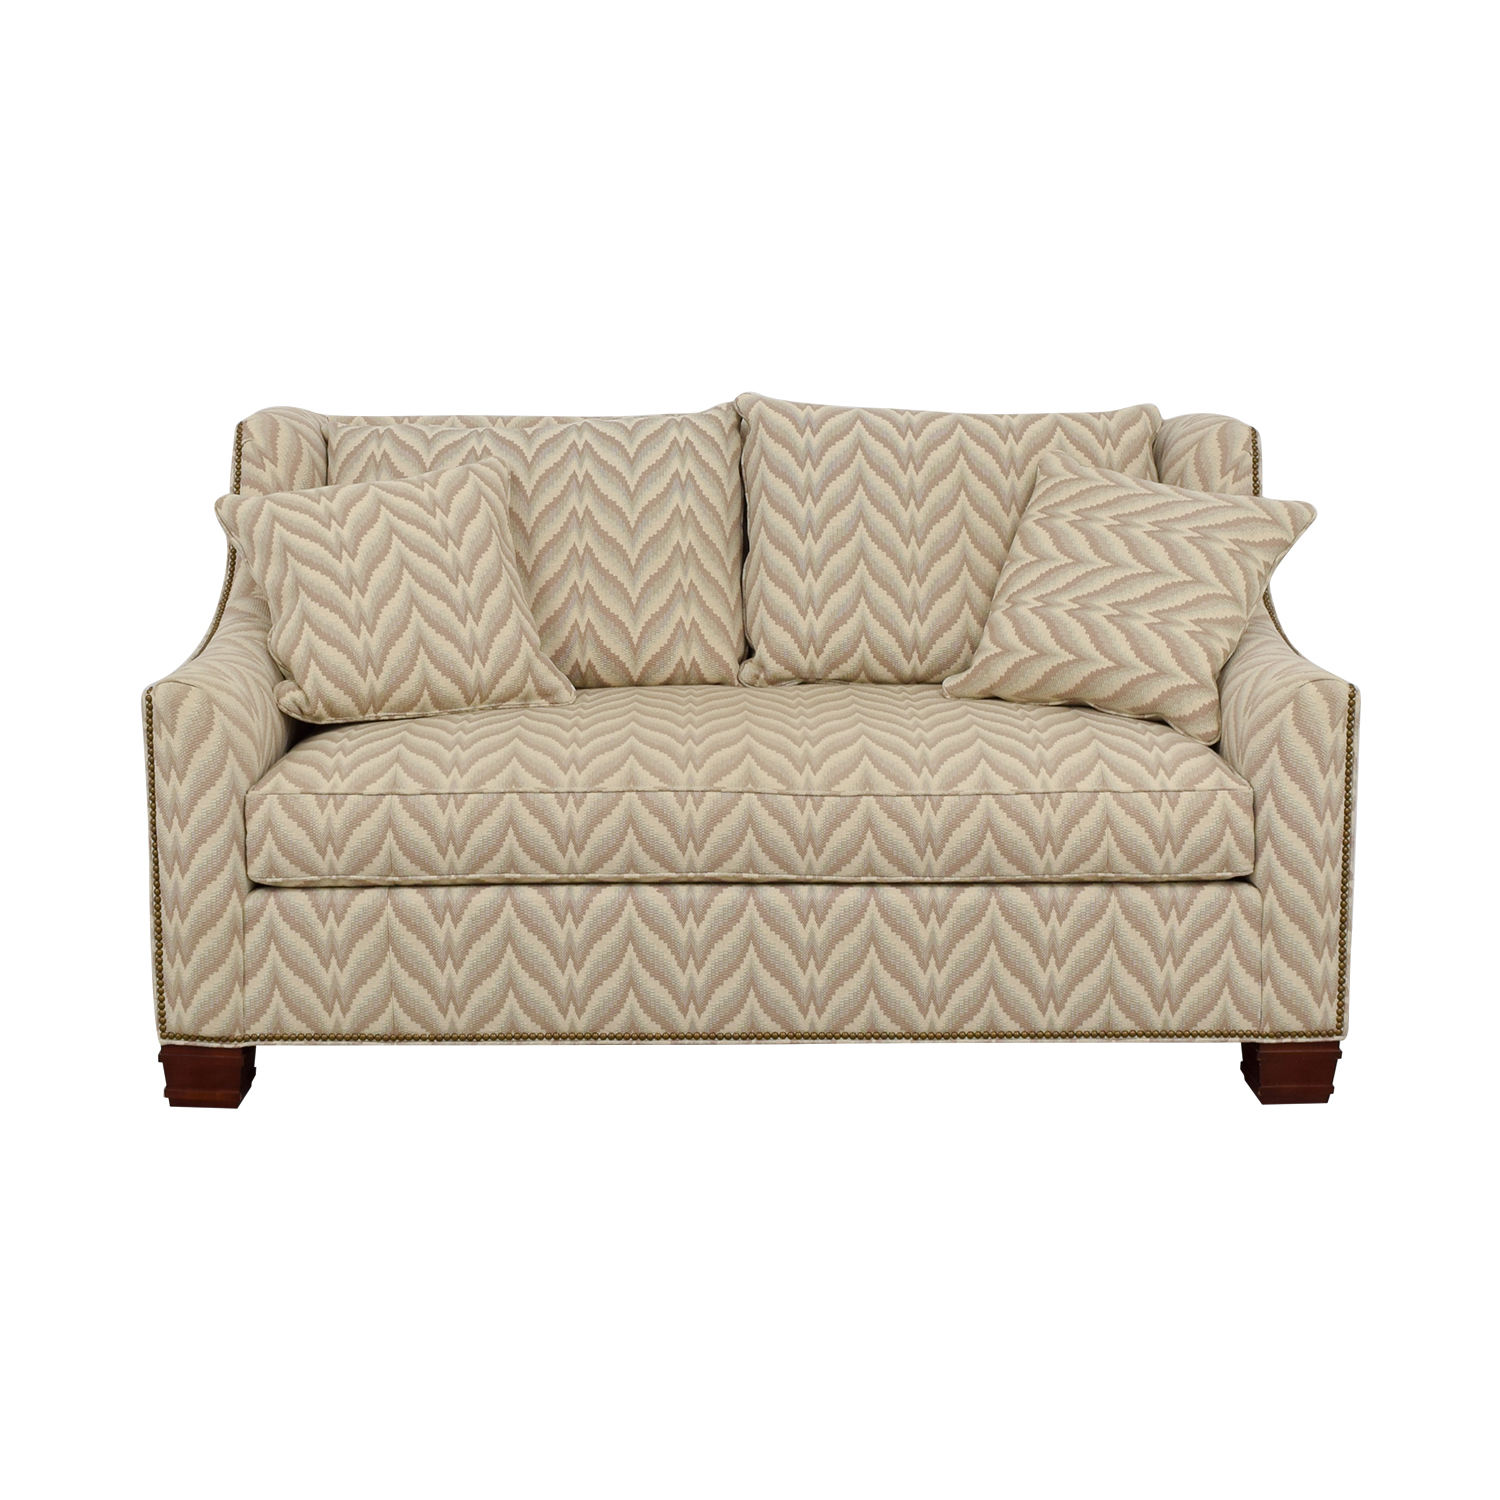 shop The Hickory Chair Furniture Co. The Hickory Chair Furniture Co. Chevron Nailhead Loveseat online